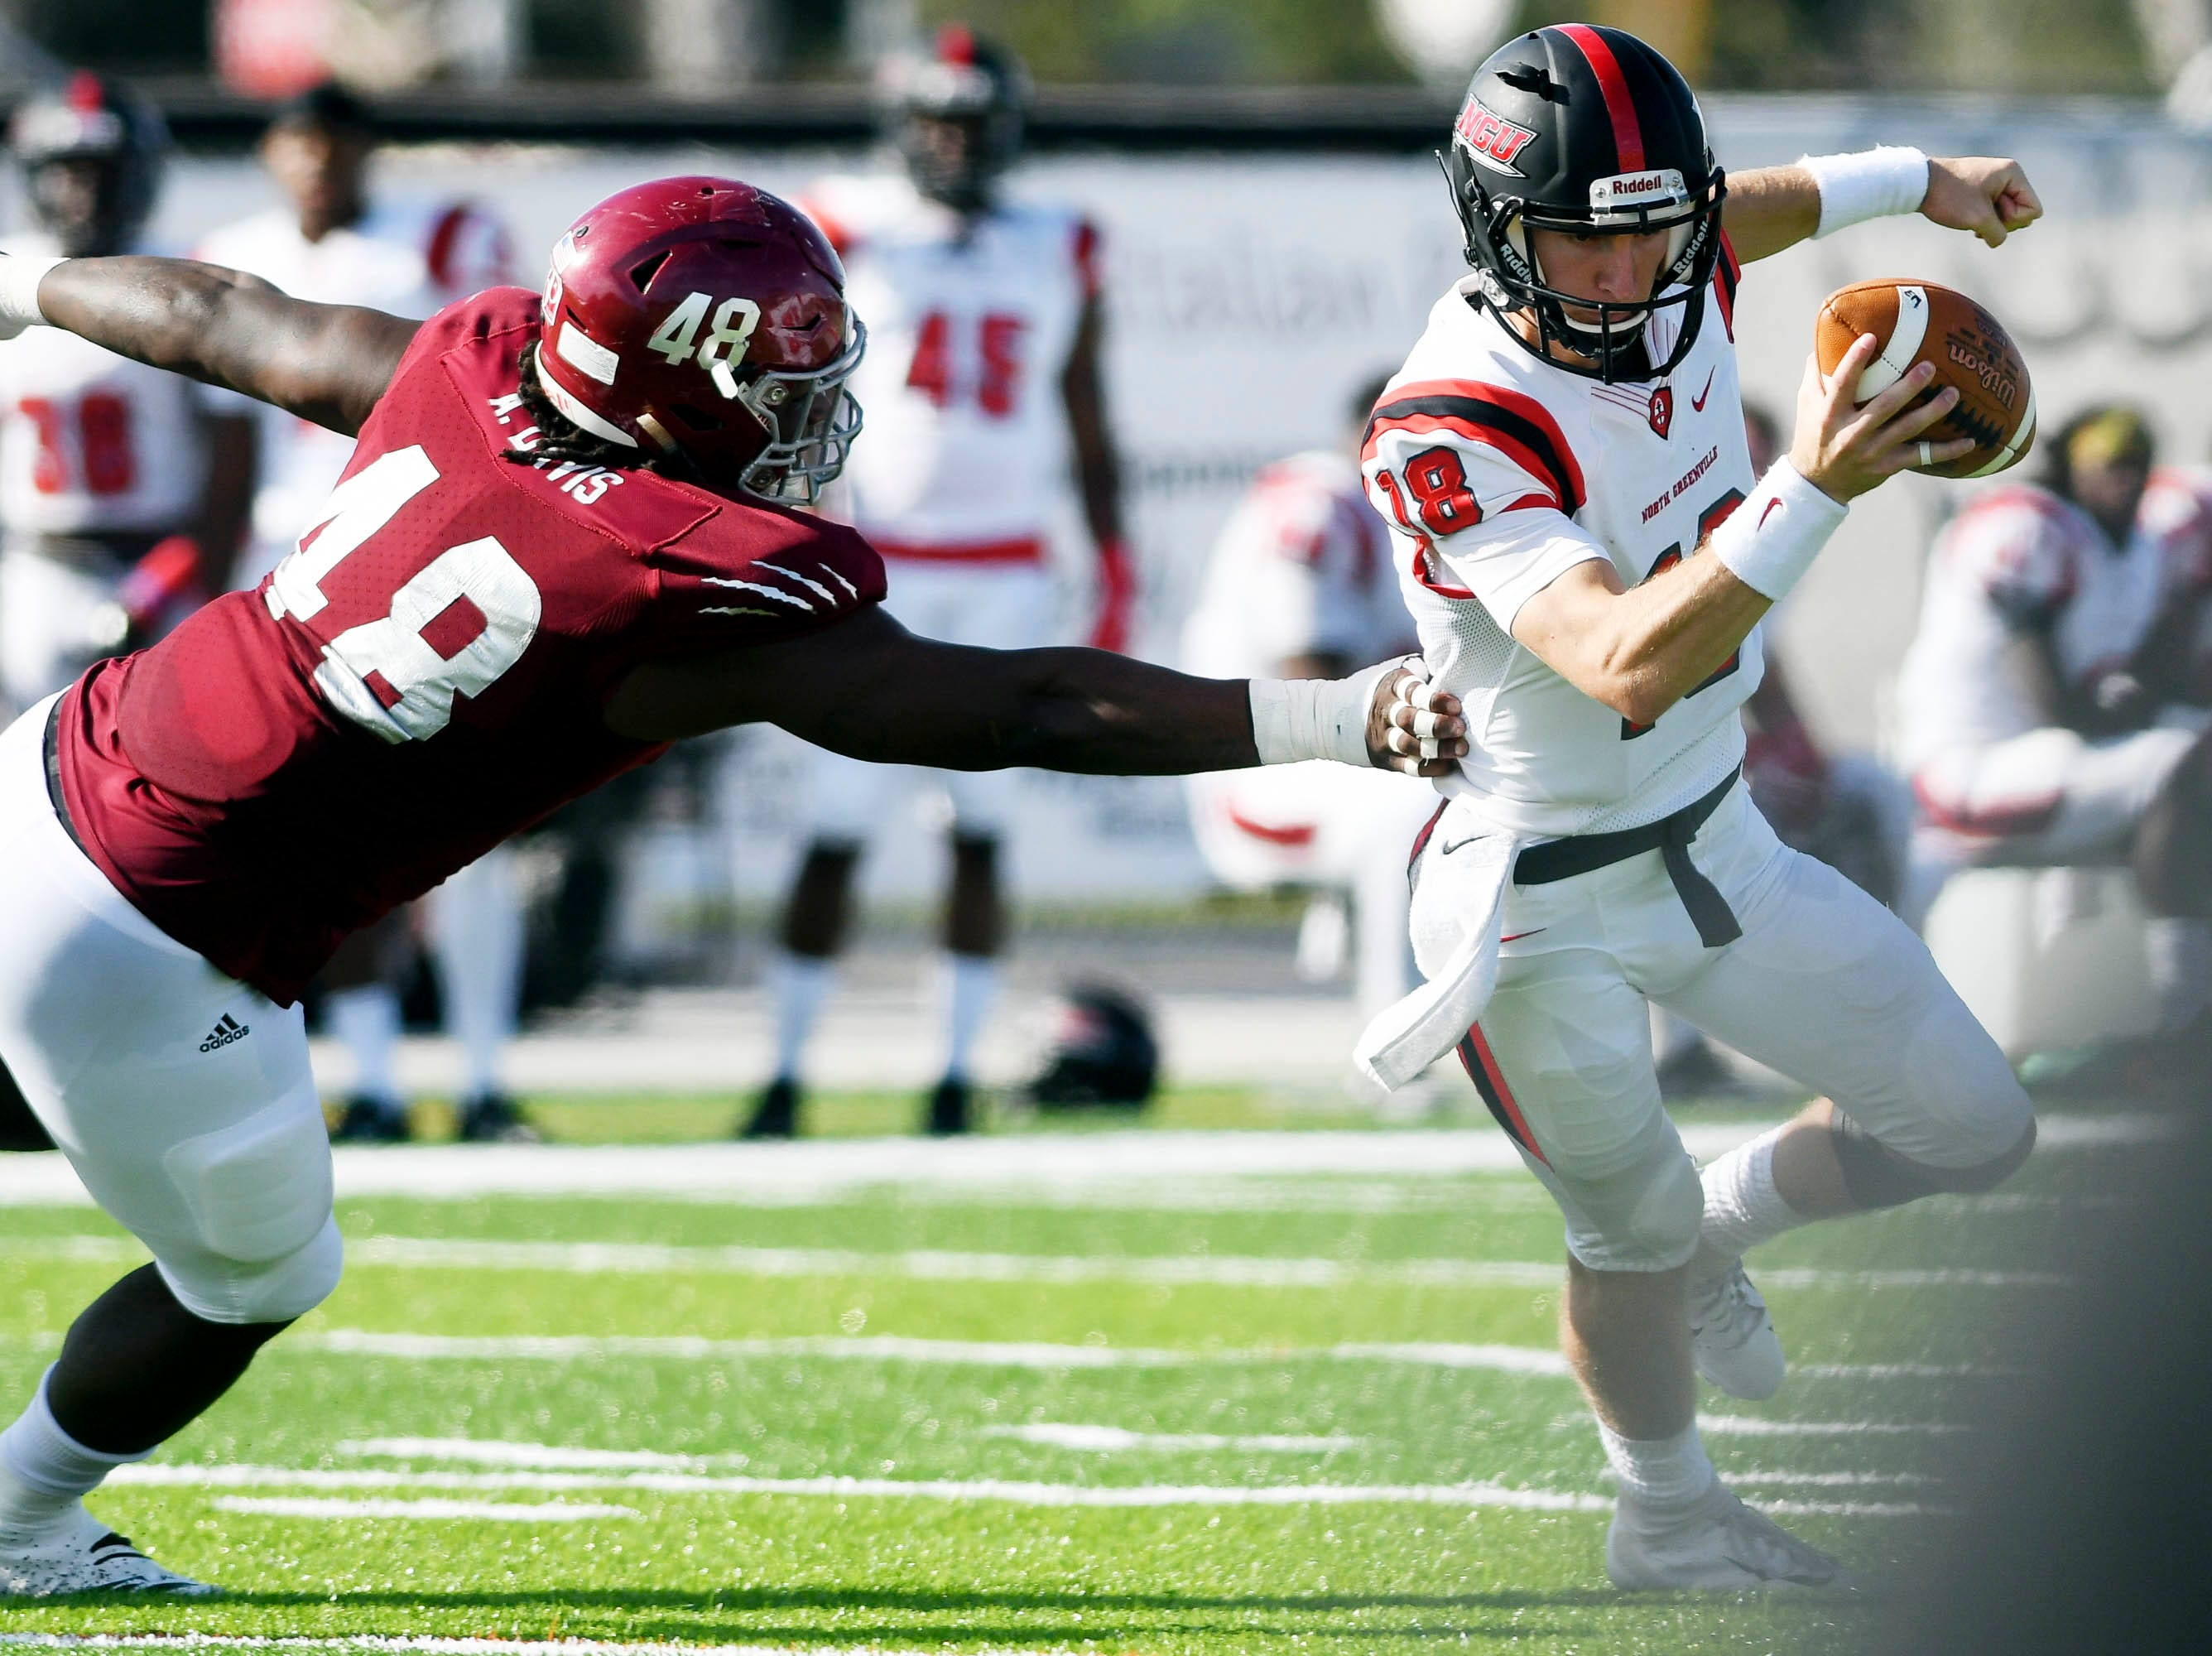 Adonis Davis of Florida Tech pursues North Greenville QB Donnie Baker during Saturday's game.